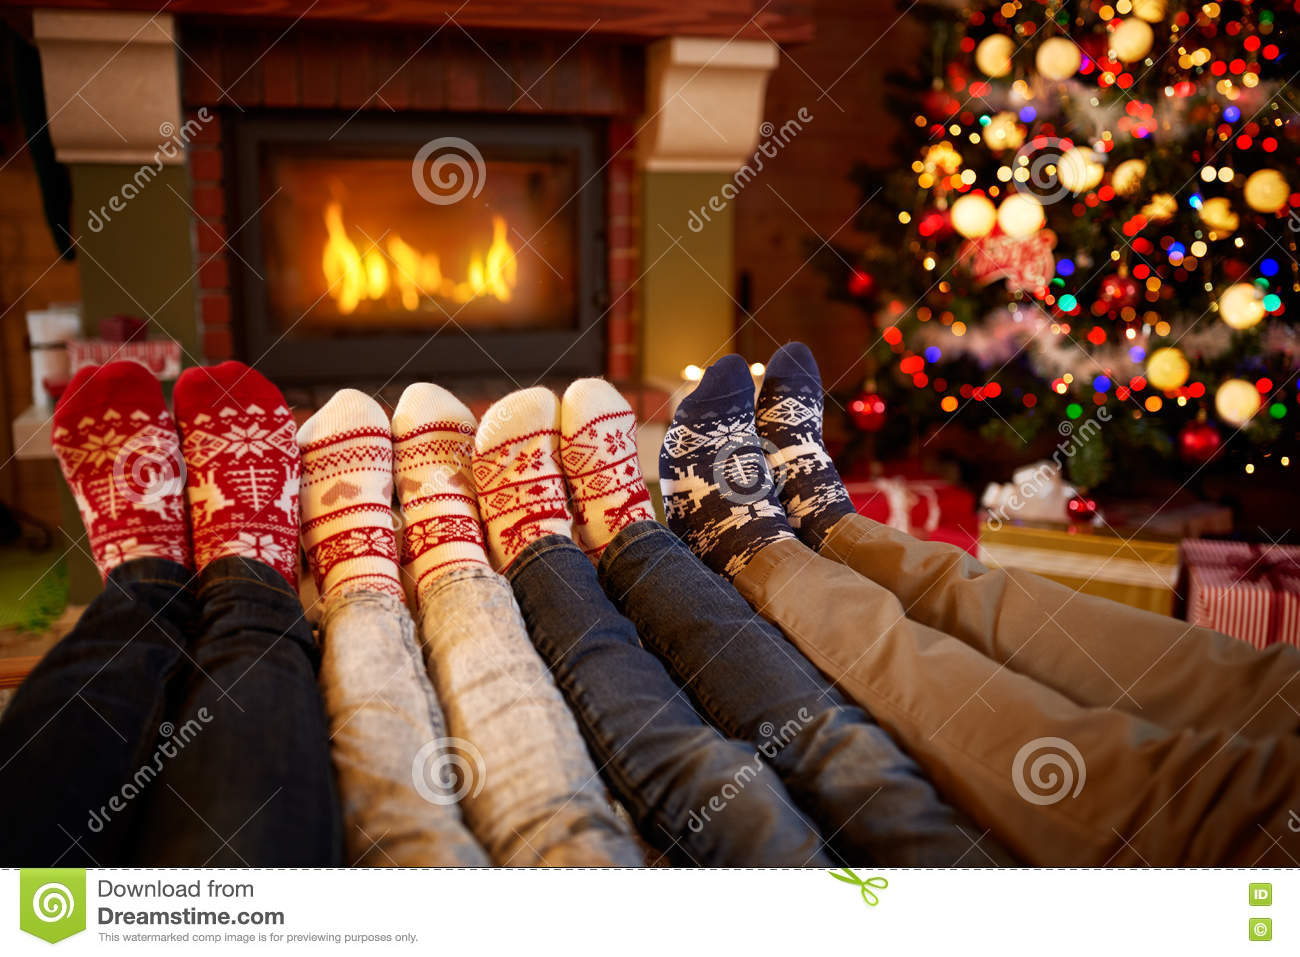 Feet in wool socks near fireplace in Christmas time